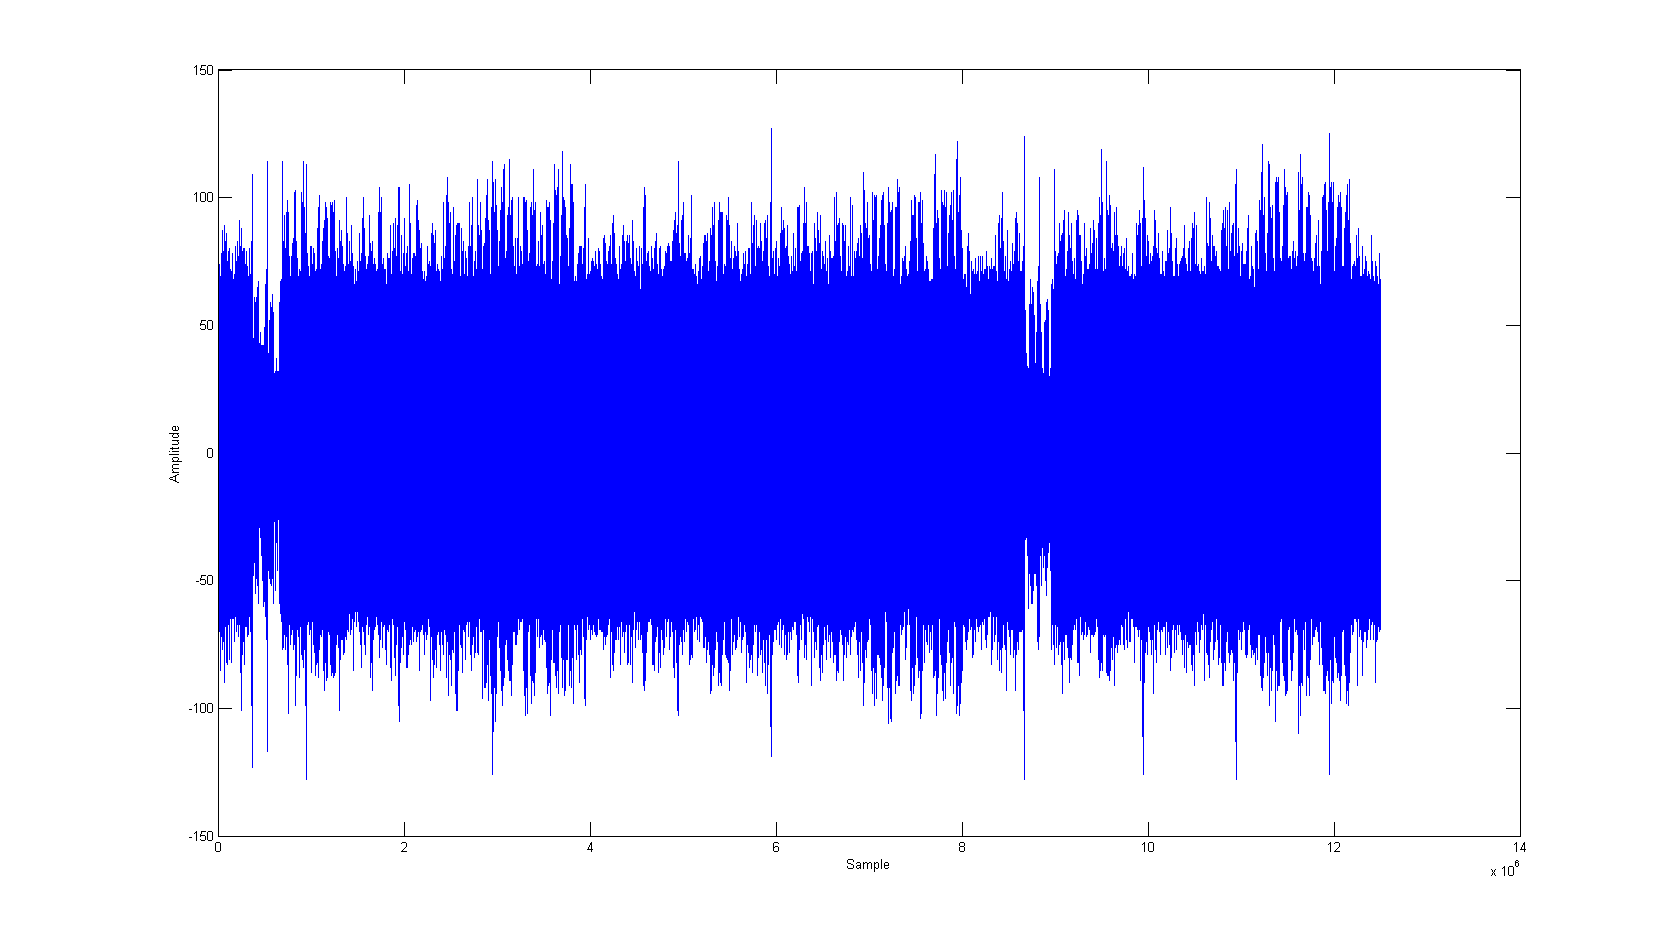 window size is 3. In the beginning of the traces, there are 3 multiply operations, which is unusual since they never stand next to each other due to the algorithm.